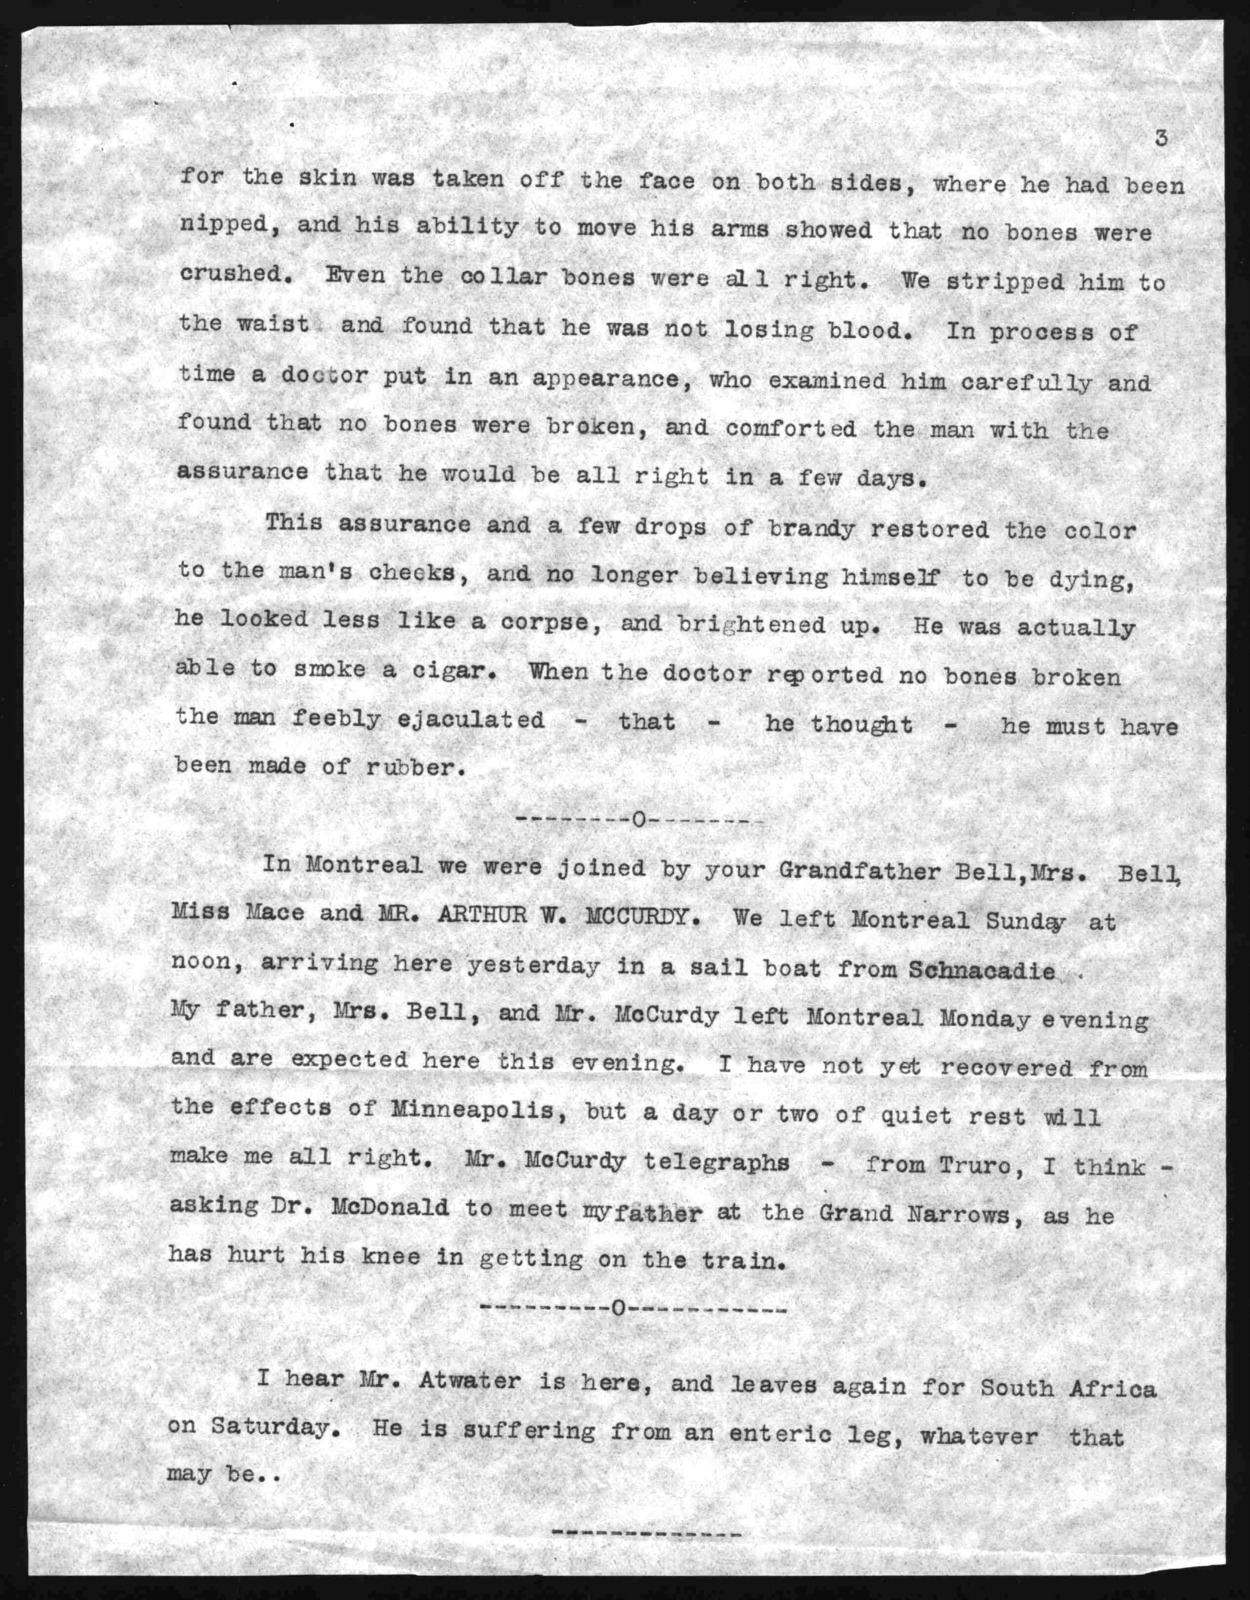 Letter from Alexander Graham Bell to Marian Bell Fairchild, from July 22, 1902 to July 24, 1902